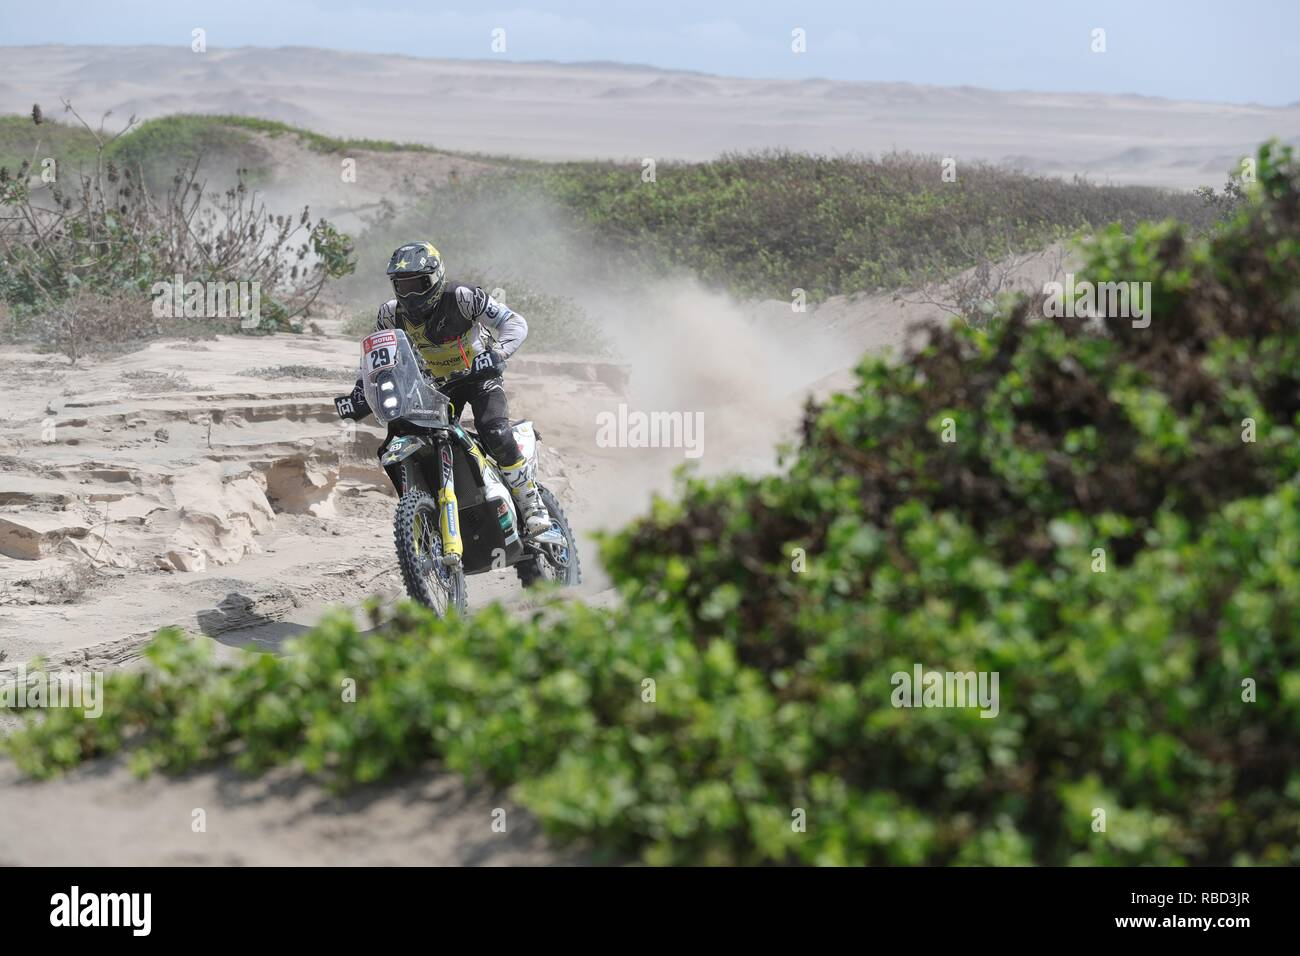 San Juan De Marcona, Peru. 09th Jan, 2019. US Andrew Short drives his Husqvarna during the third stage of the Rally Dakar 2019, from San Juan de Marcona to Arequipa, in Peru, 09 January 2019. Credit: Ernesto Arias/EFE/Alamy Live News - Stock Image